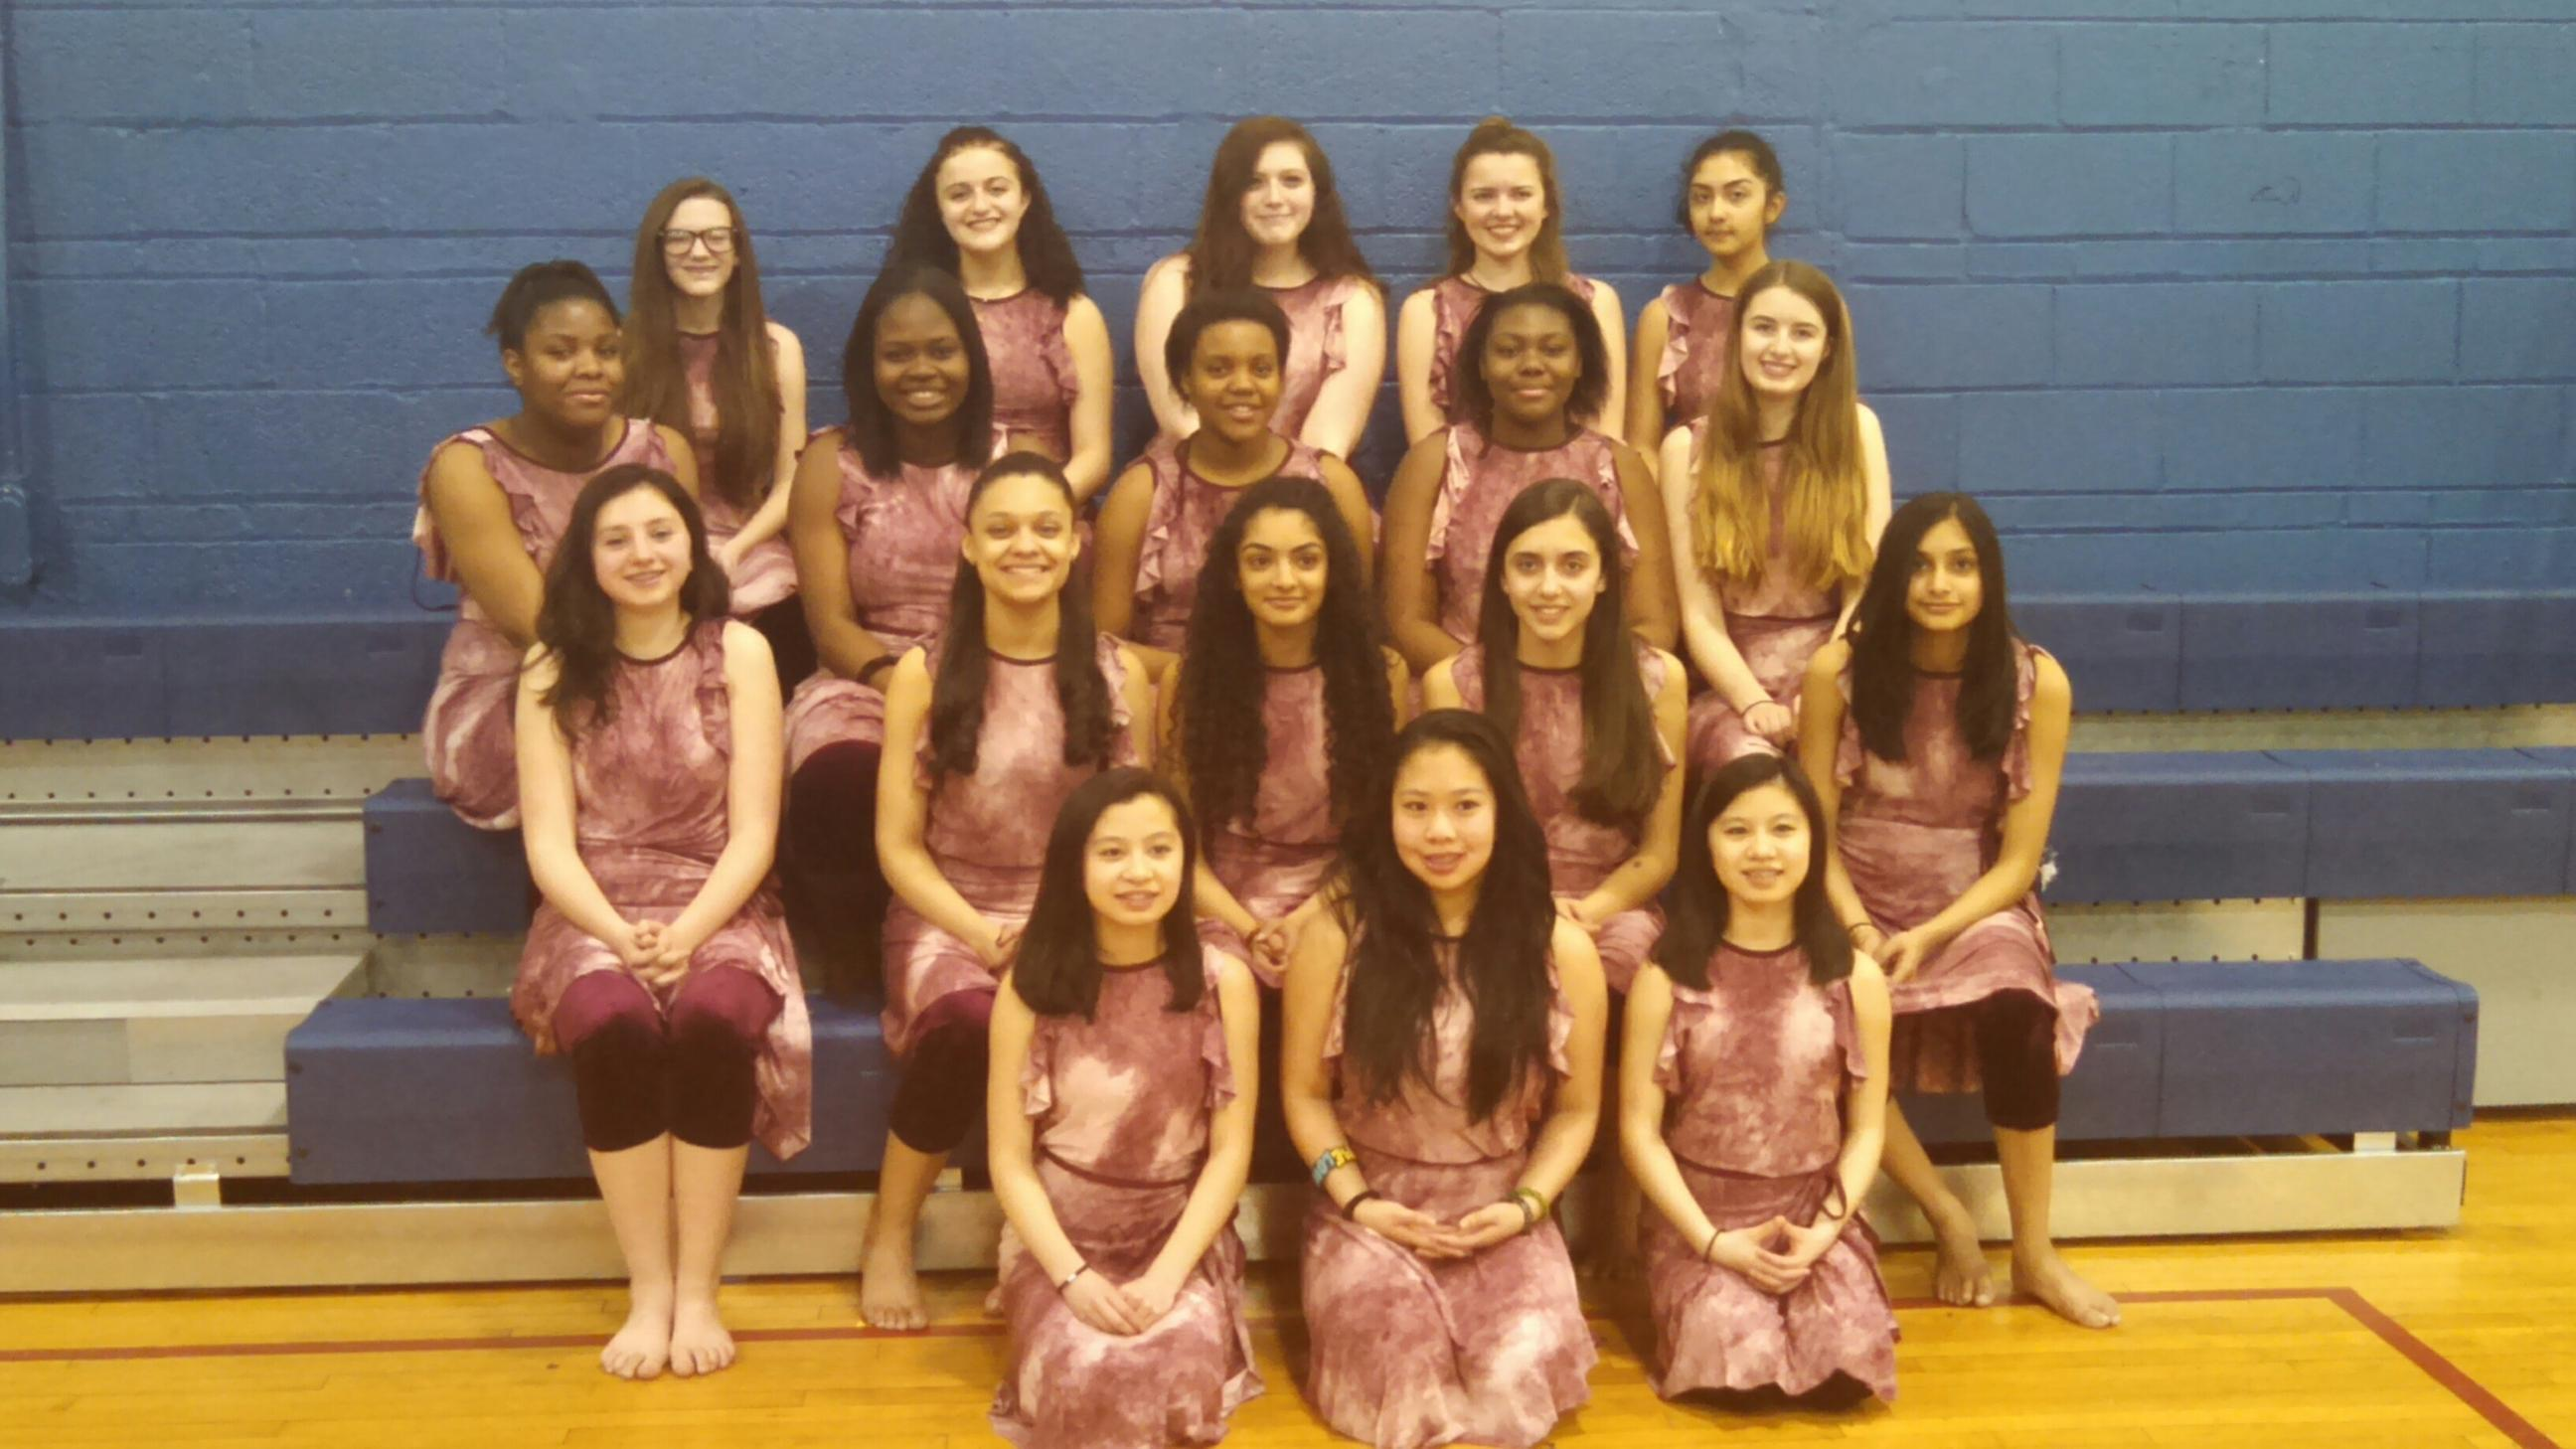 Articles about color guard - The 2015 West Orange Hs A Guard Top Row Of Students Left To Right Madeline Machado Aysar Abdelgelil Samantha Hess Emily Lux Sarah Salazar